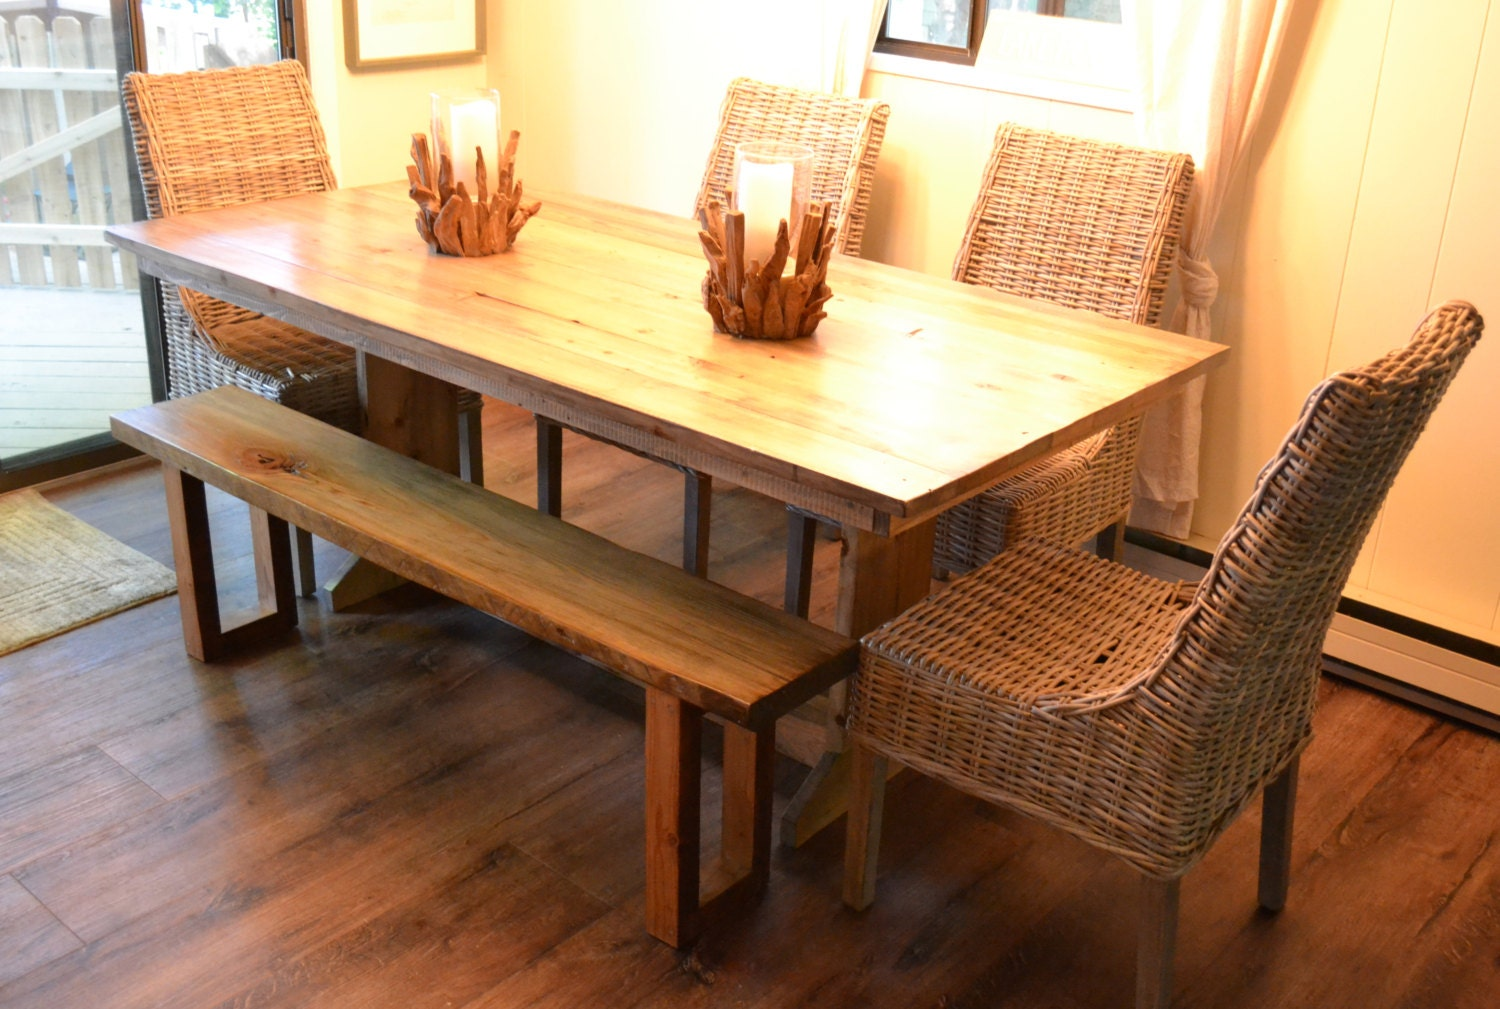 reclaimed wood farm table dining table kitchen table. Black Bedroom Furniture Sets. Home Design Ideas